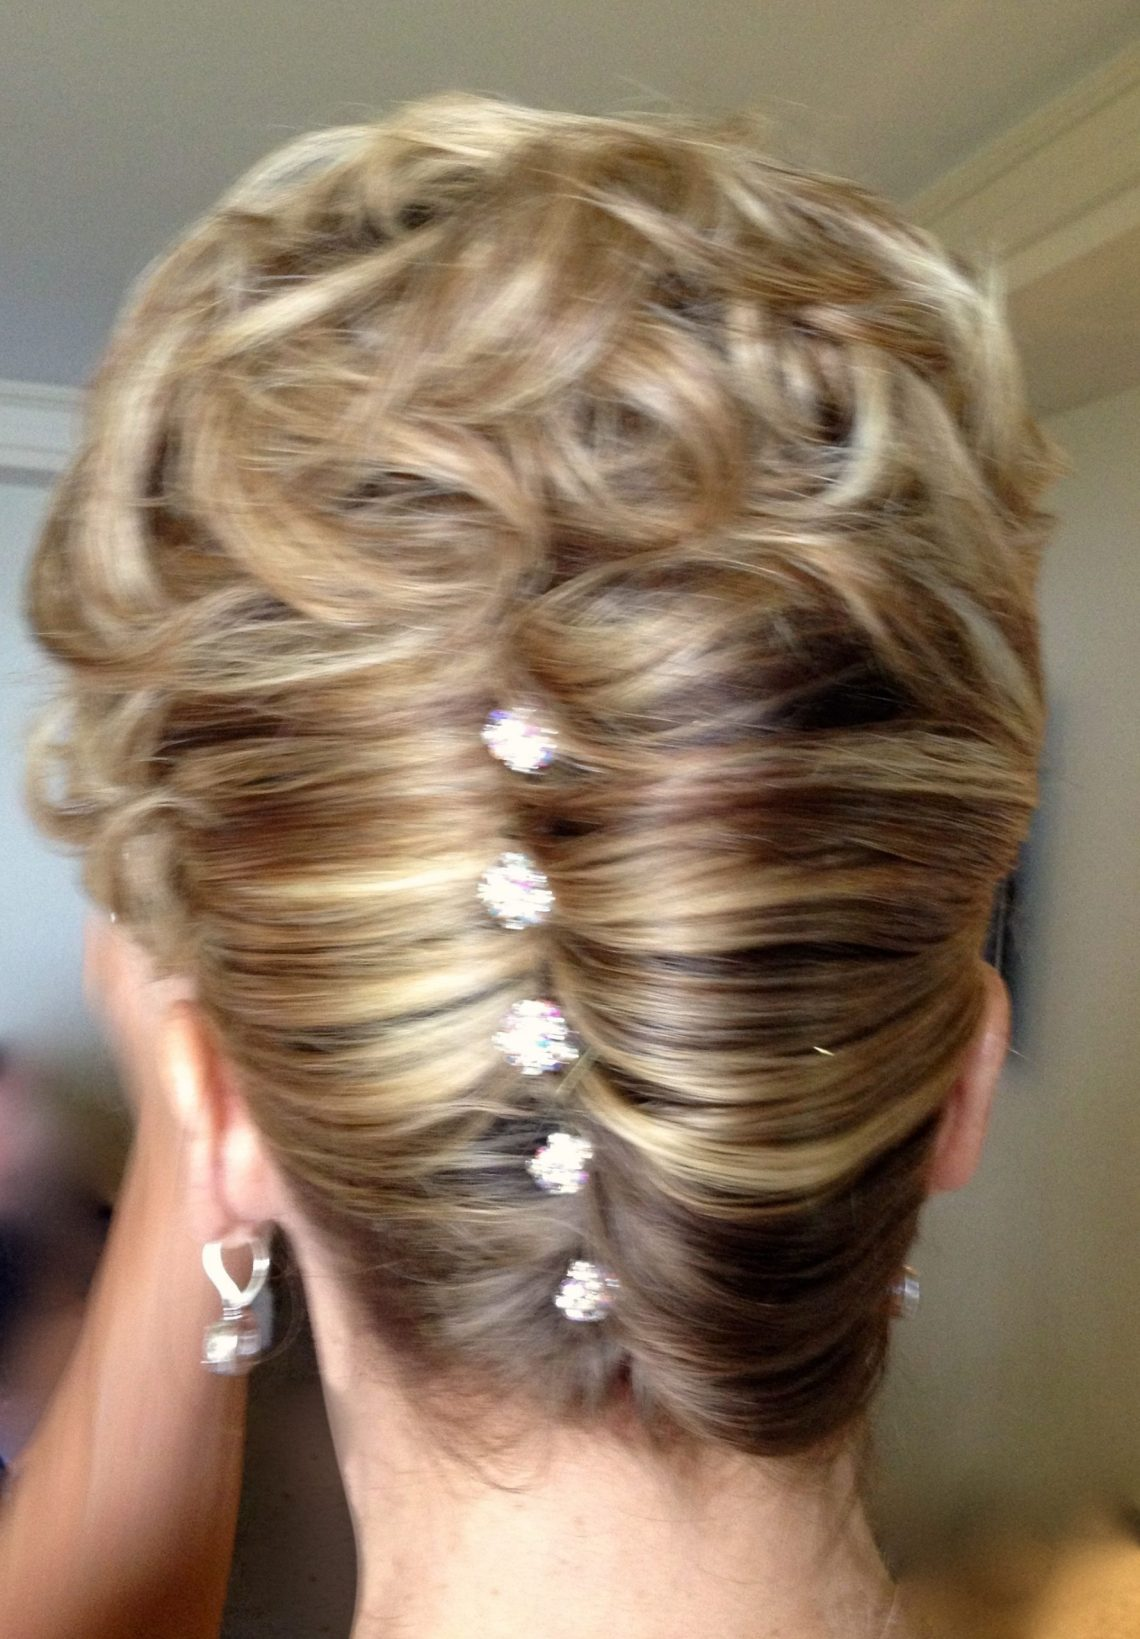 Mother Of The Bride Classic French Twist With A Little Mother Of The Bride Wedding Hairstyles For Medium Length Hair